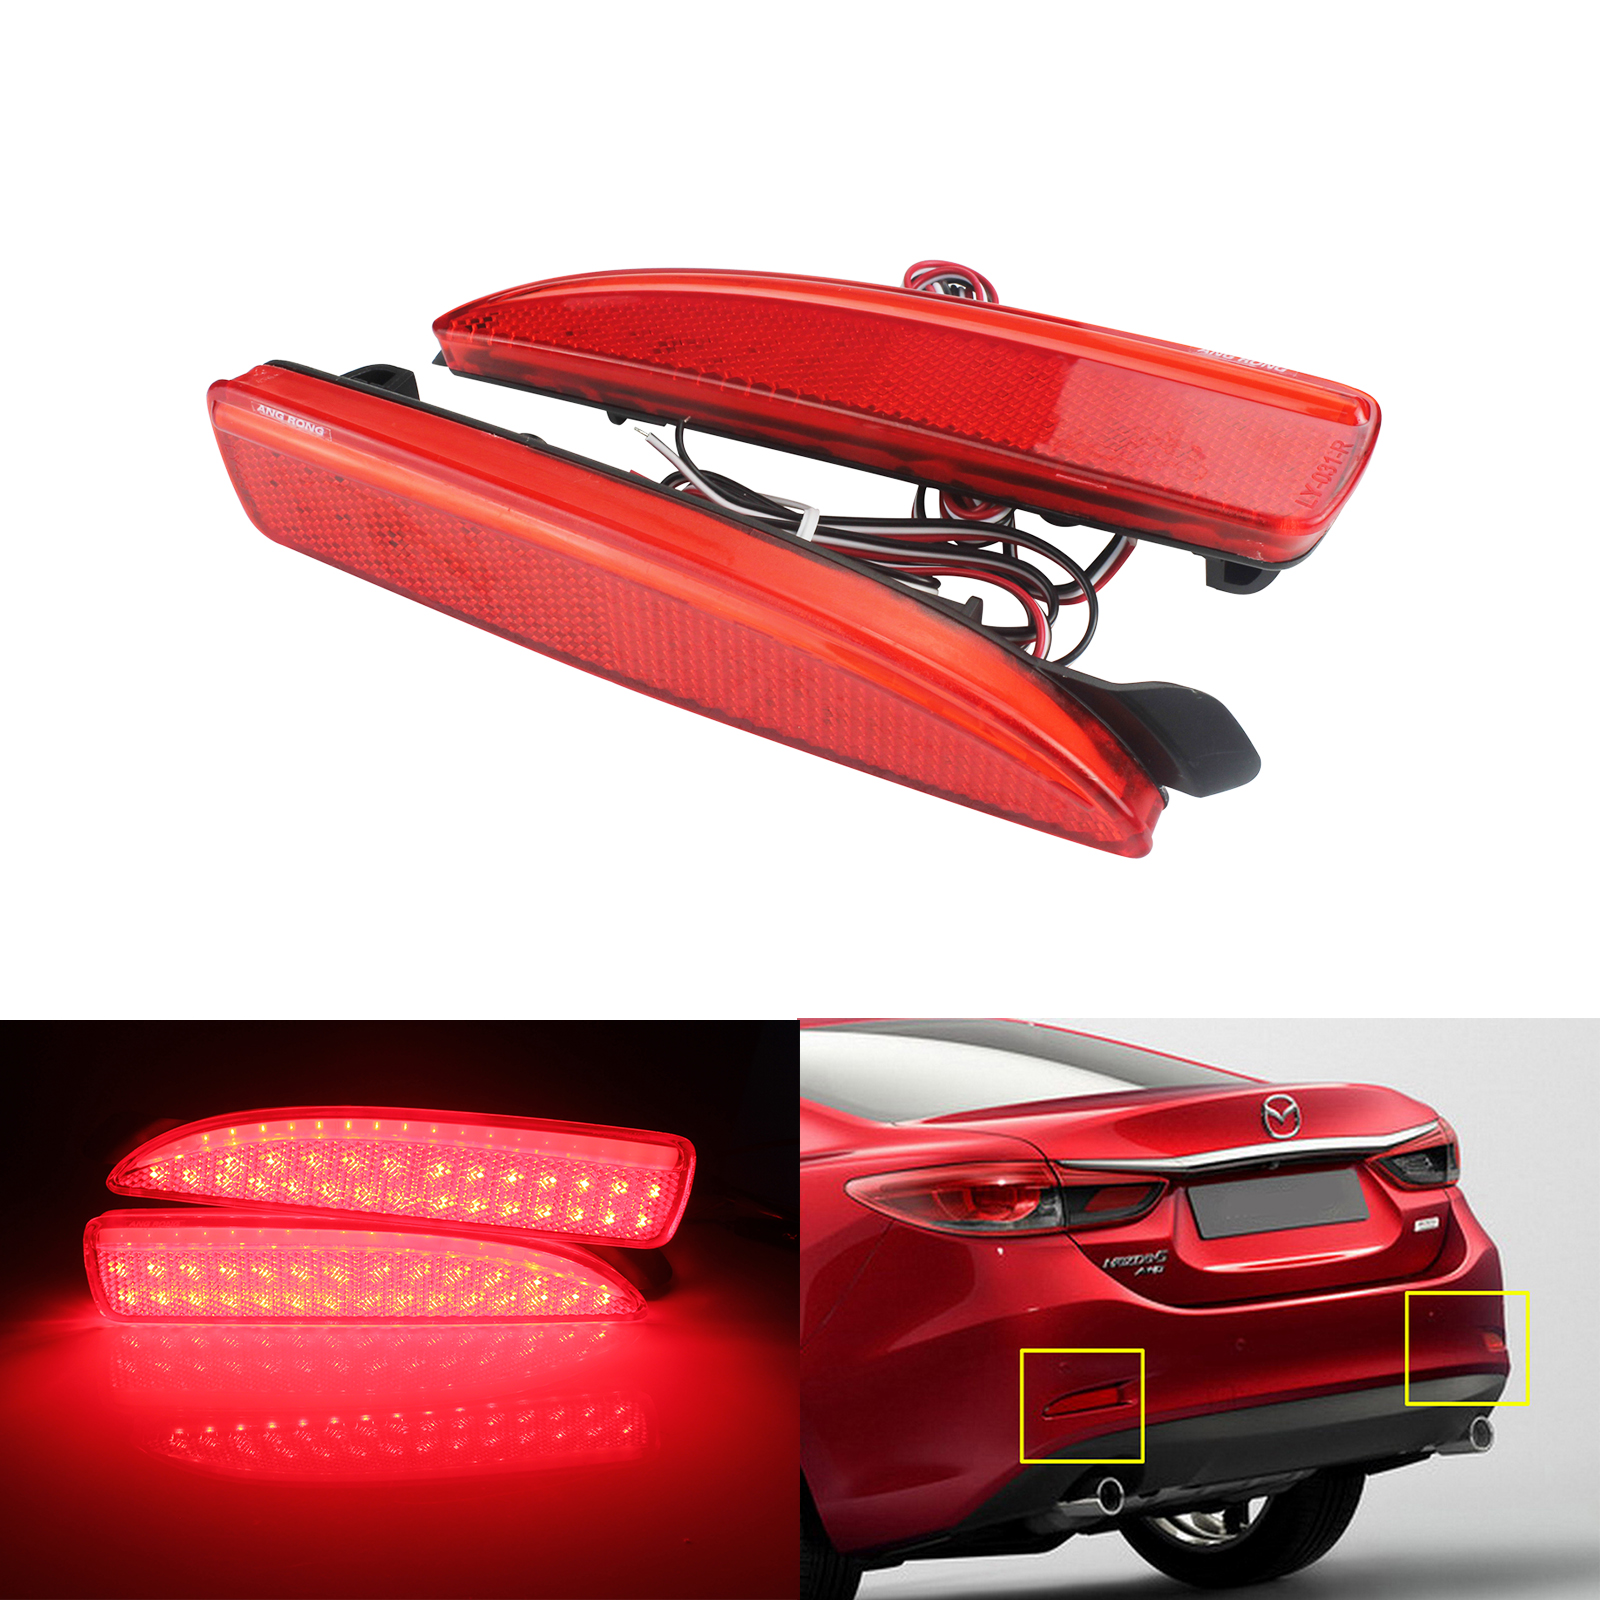 ANGRONG 2X Rear Bumper Reflector <font><b>LED</b></font> <font><b>Tail</b></font> Stop Brake <font><b>Light</b></font> For <font><b>Mazda</b></font> 2 3 5 <font><b>6</b></font> DY Axela Atenza image